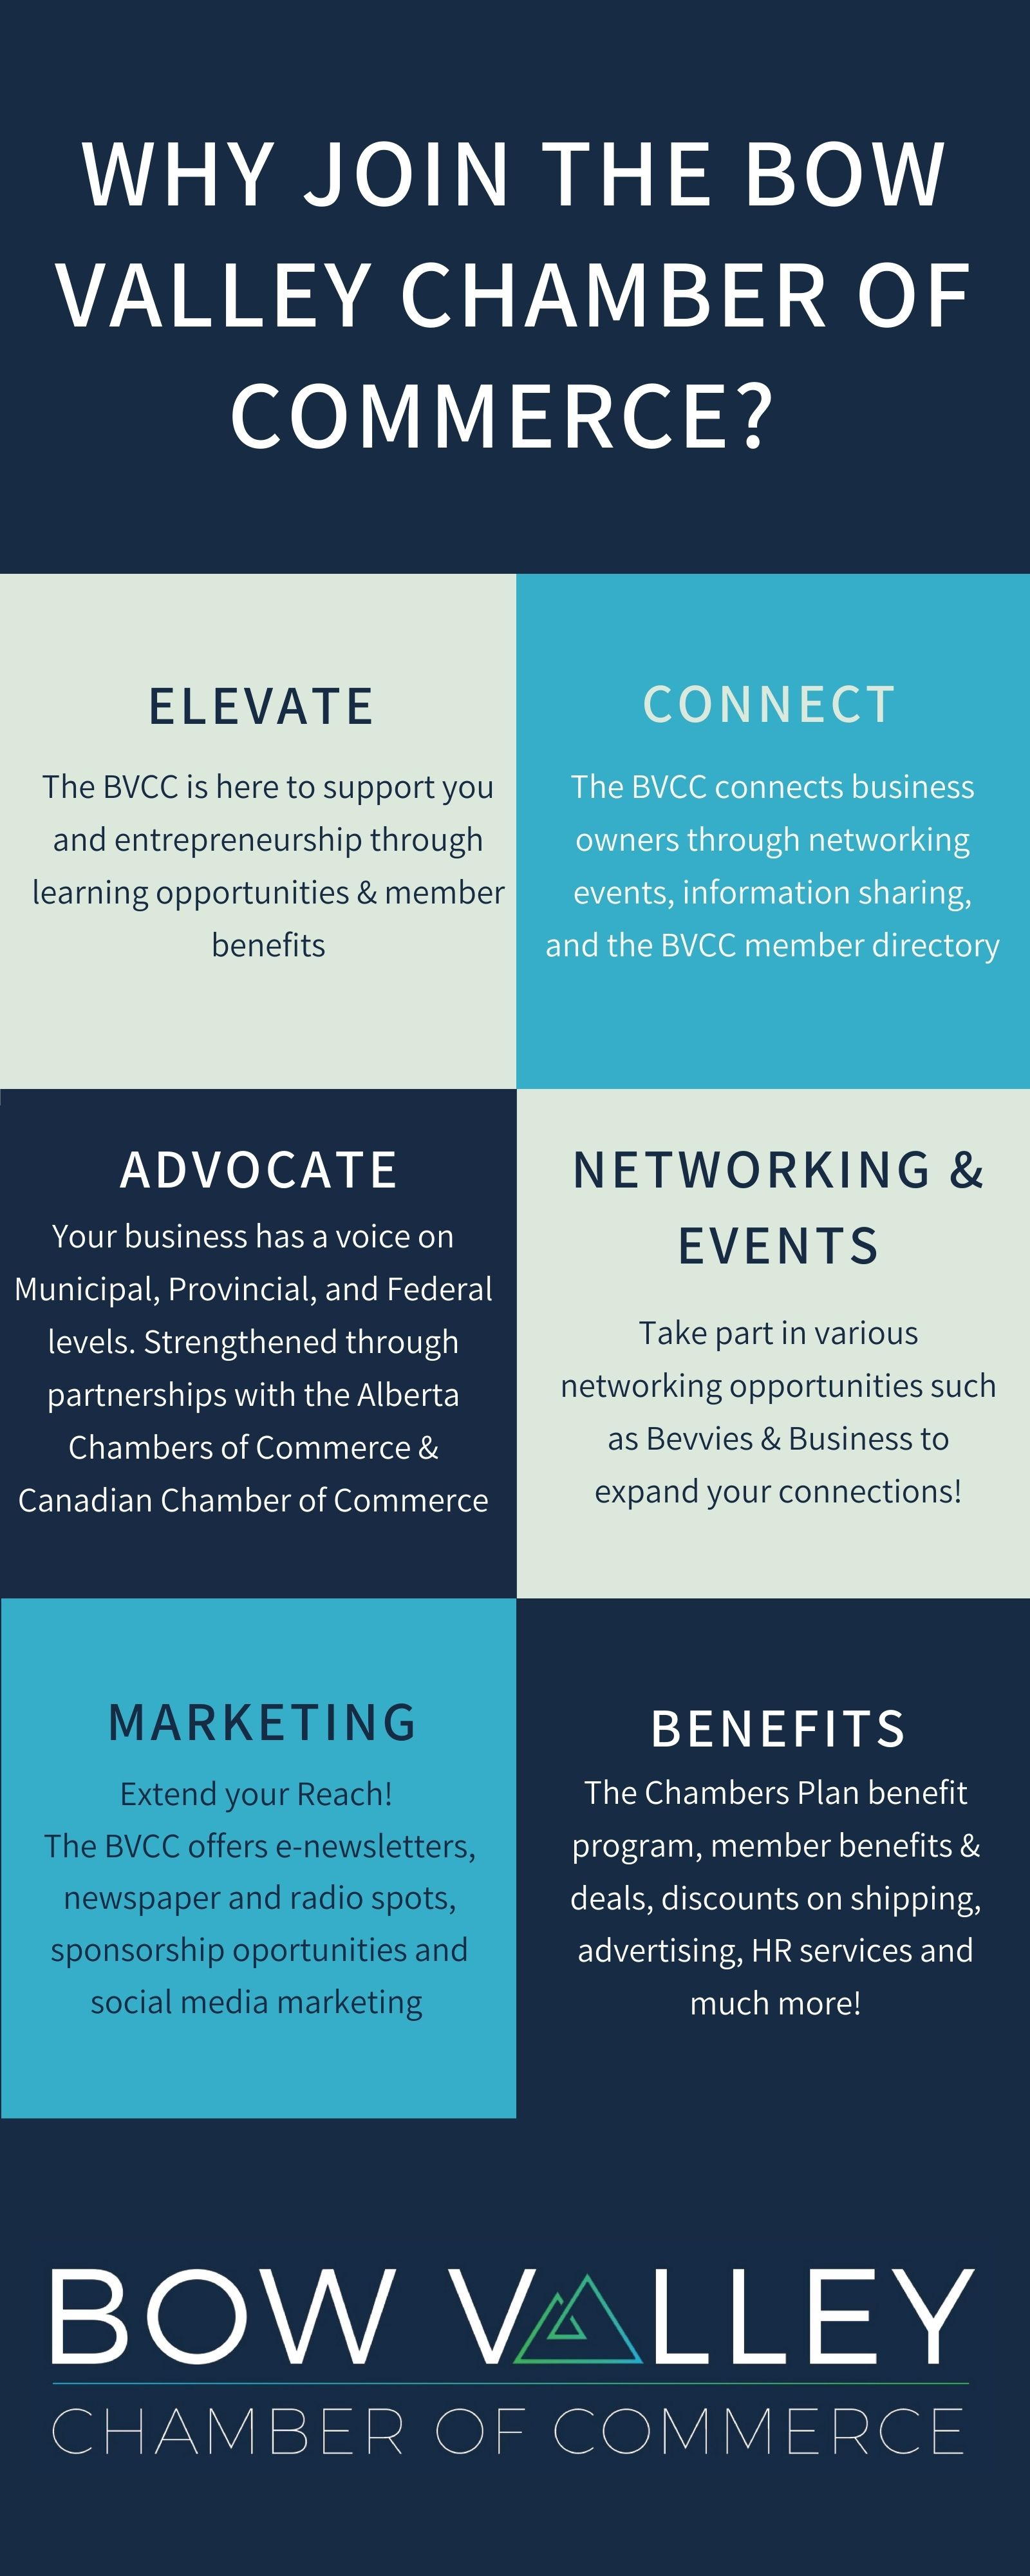 BVCC Why Join Infographic